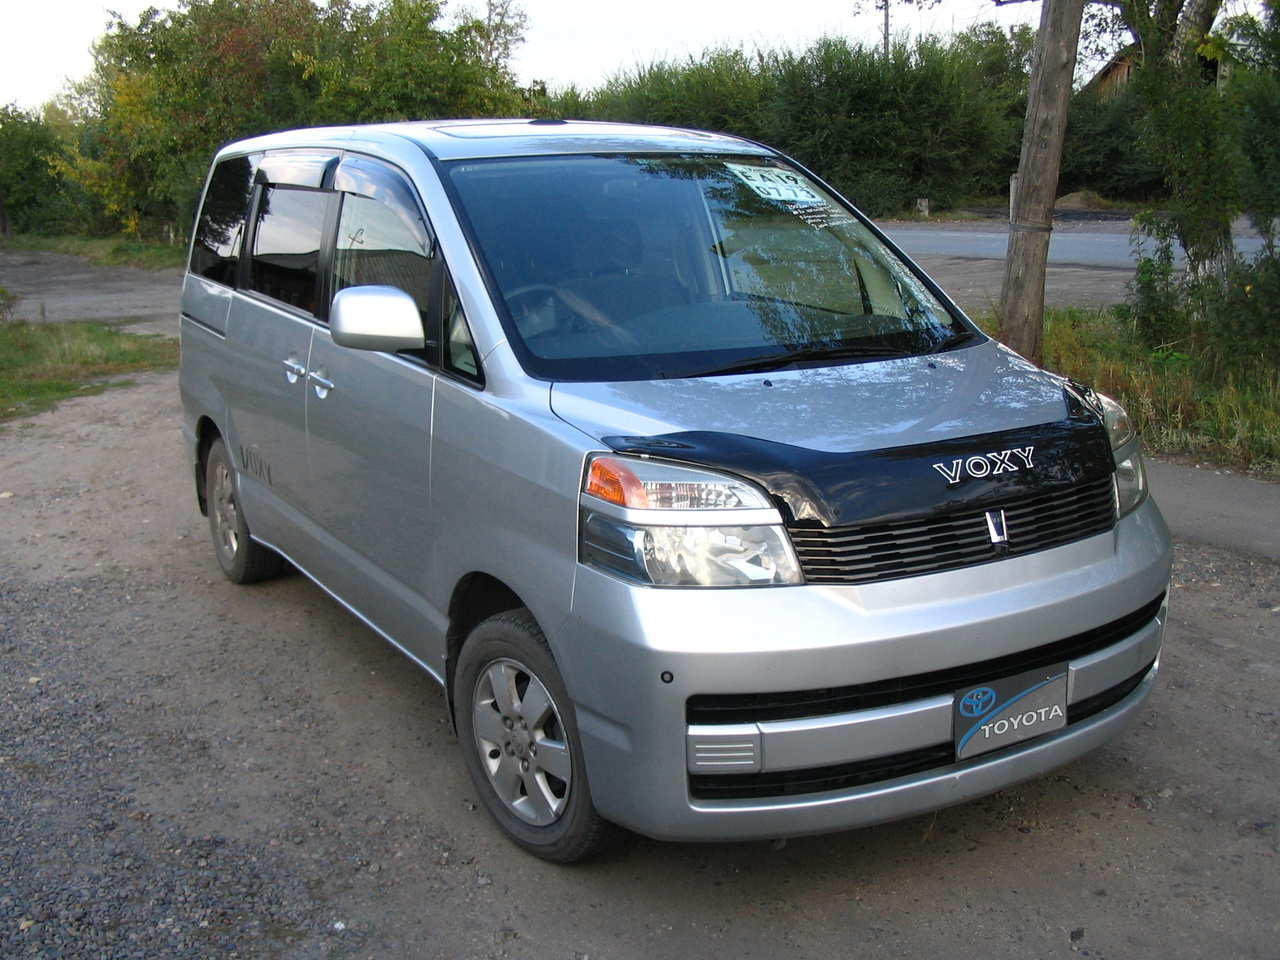 photo #1 - enlarge photo 1280x960 2002 toyota voxy pictures